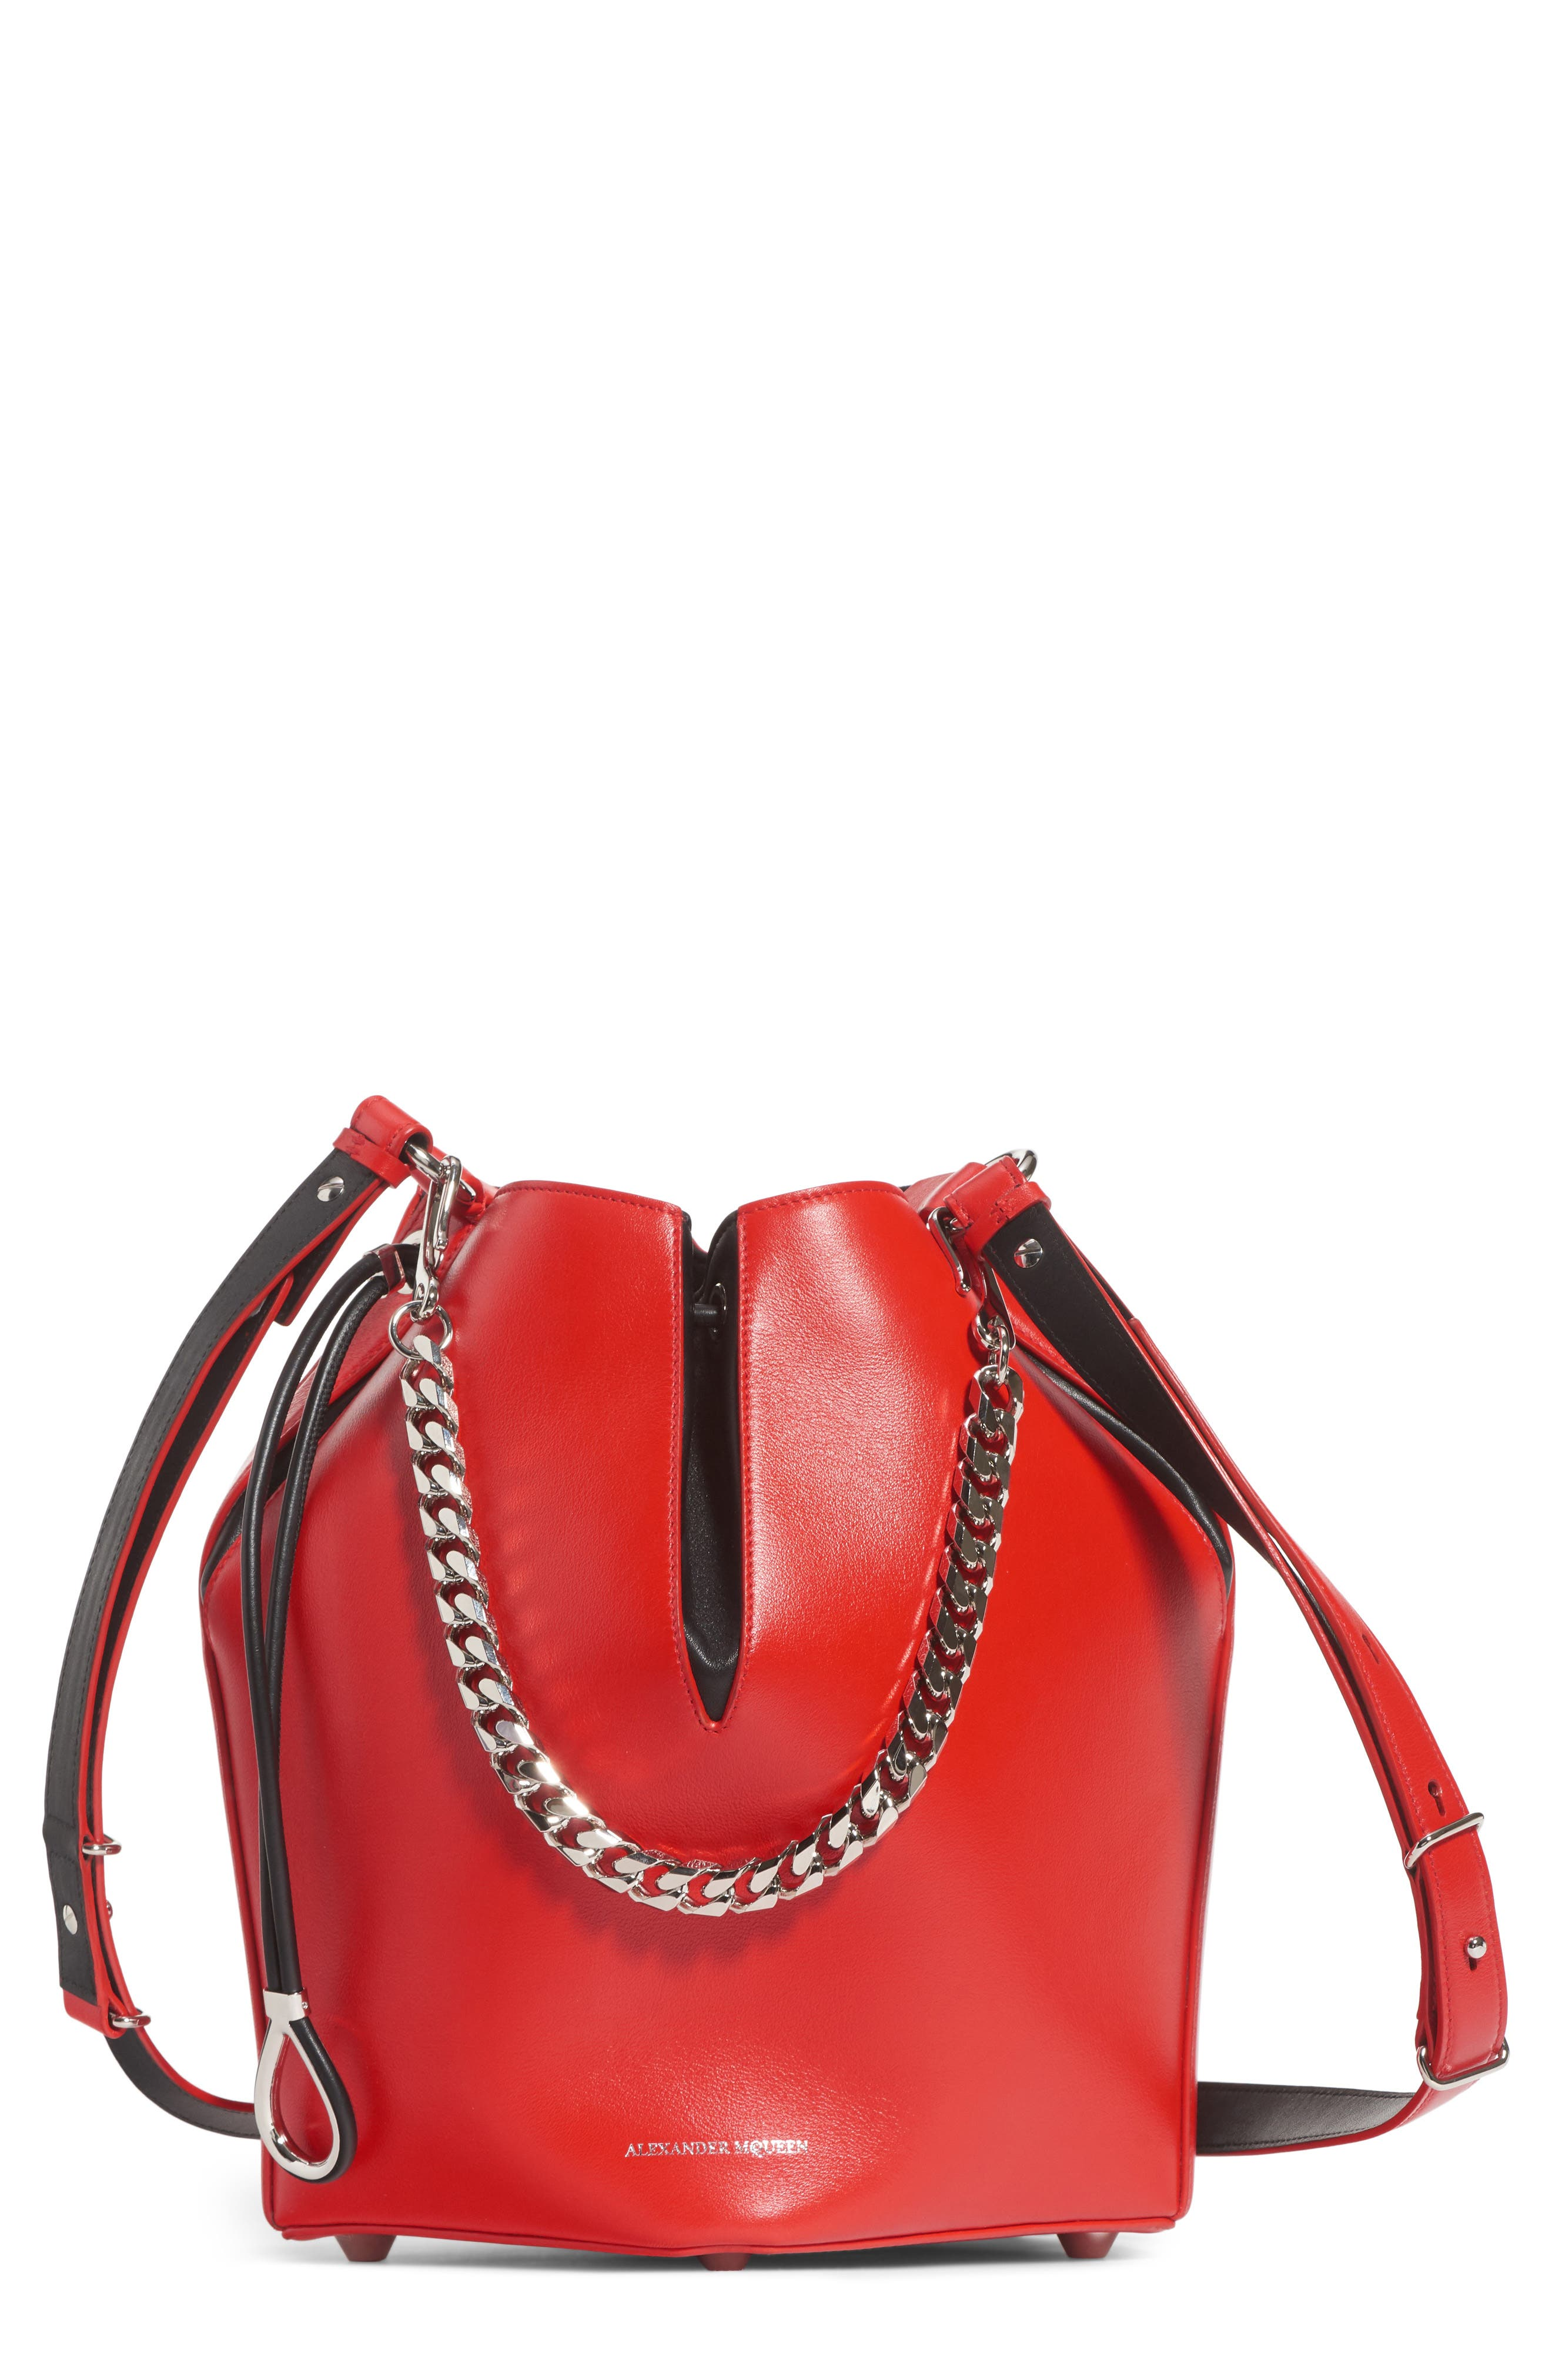 Alexander McQueen Leather Bucket Bag